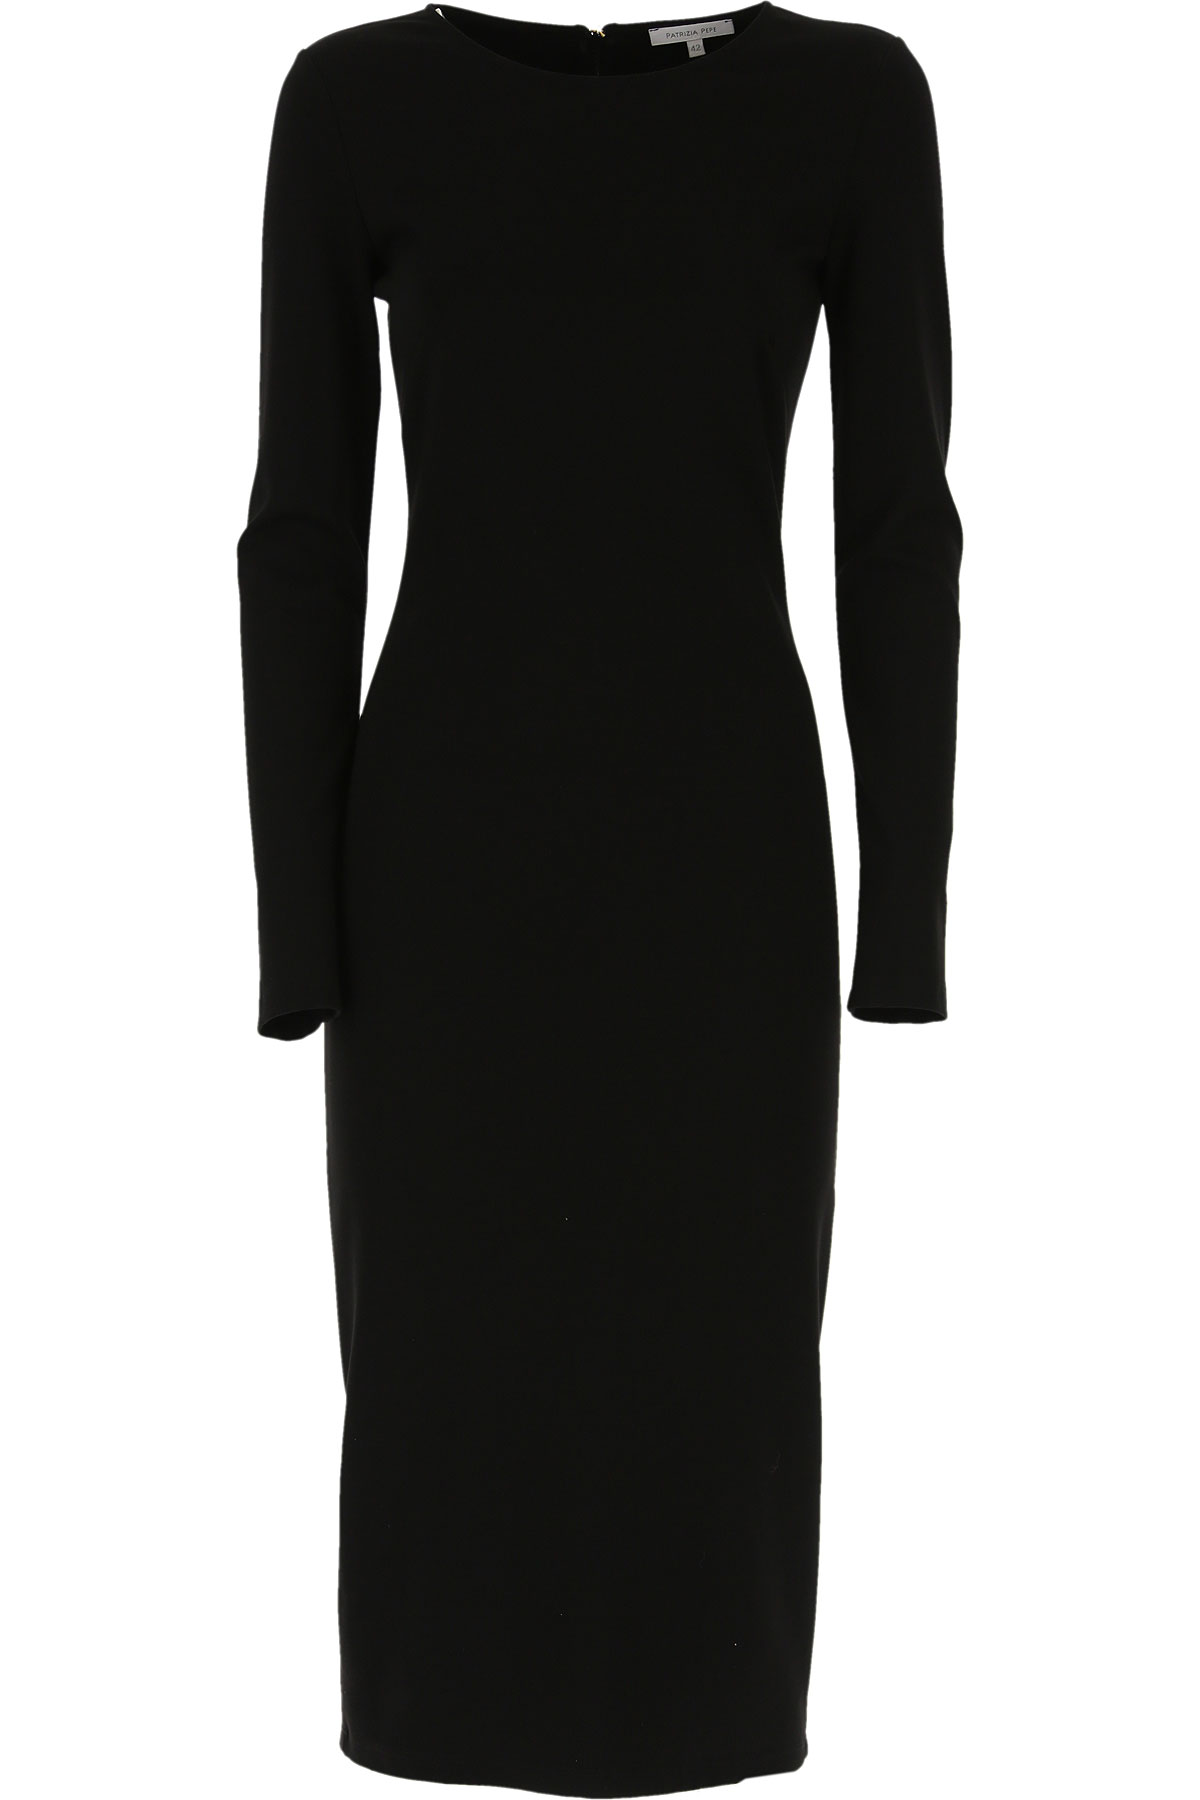 Patrizia Pepe Dress for Women, Evening Cocktail Party On Sale, Black, Viscose, 2019, 6 8